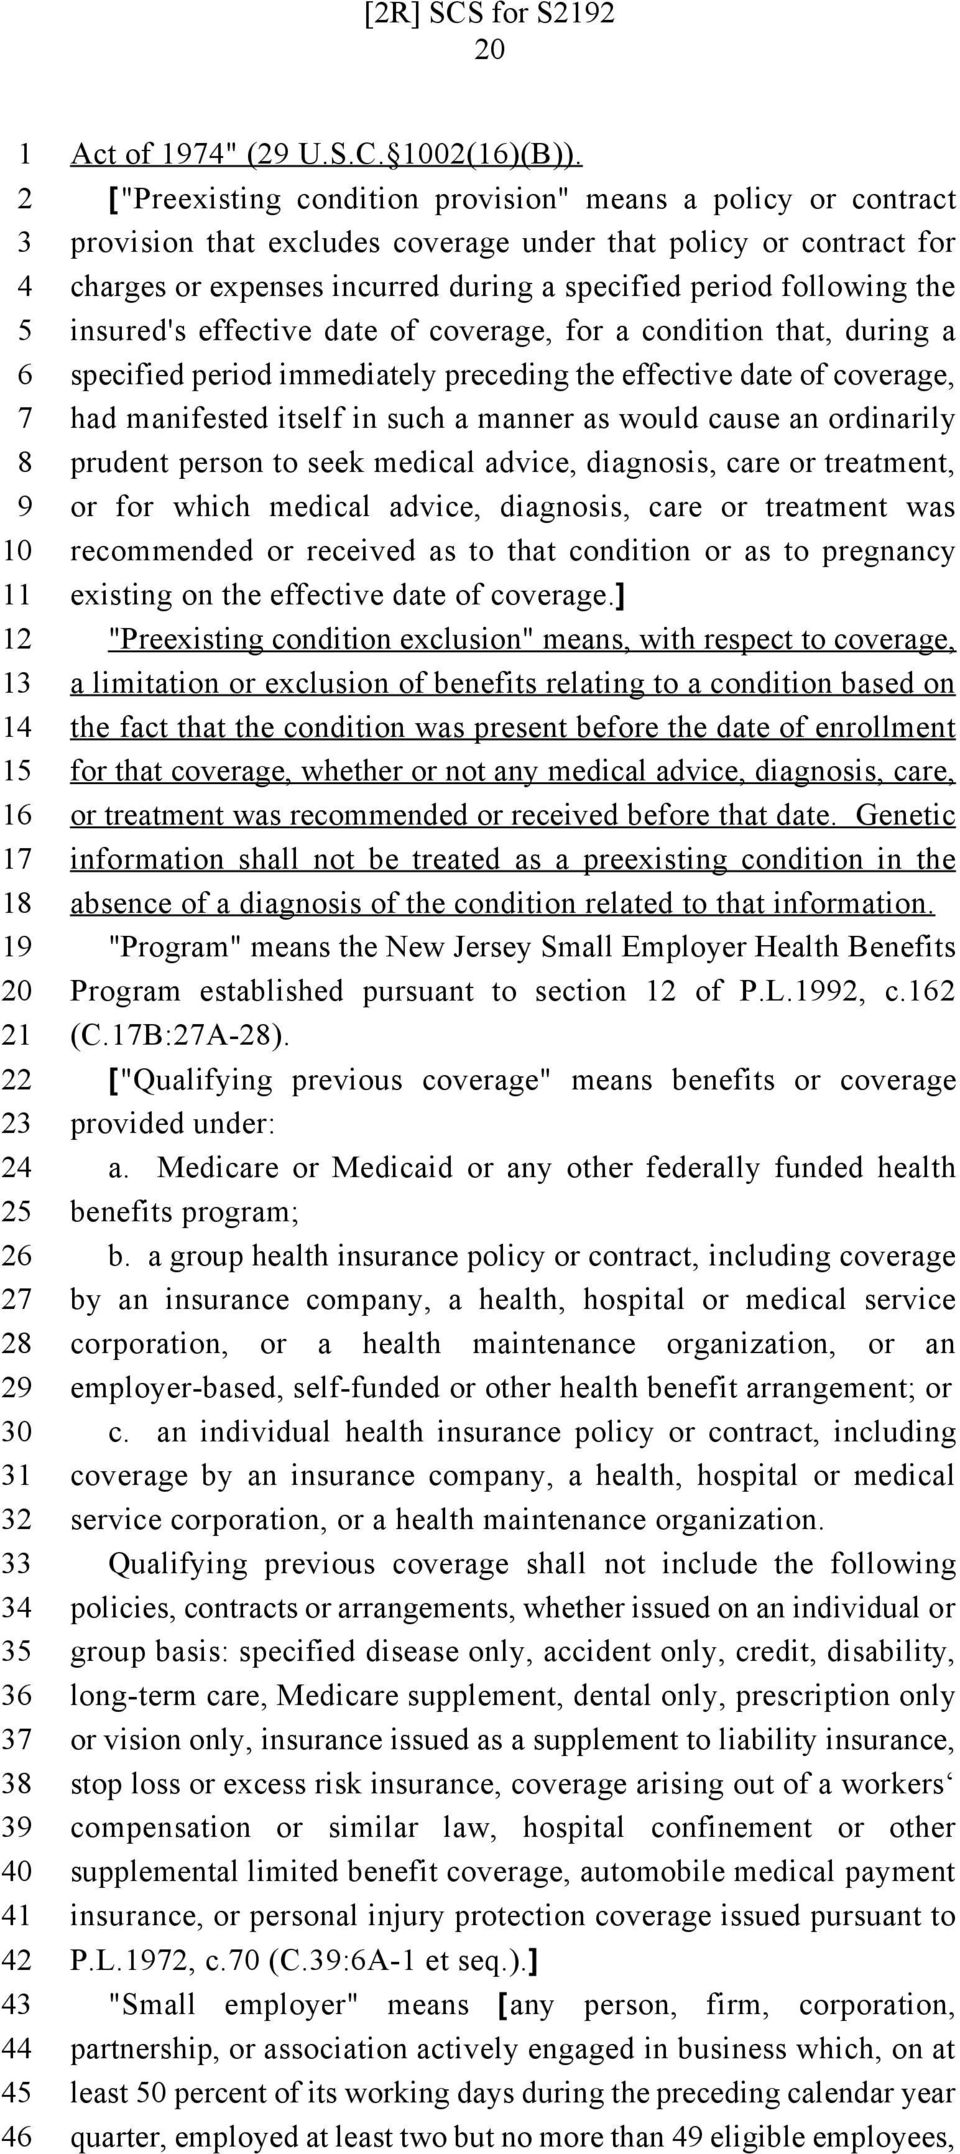 insured's effective date of coverage, for a condition that, during a specified period immediately preceding the effective date of coverage, had manifested itself in such a manner as would cause an